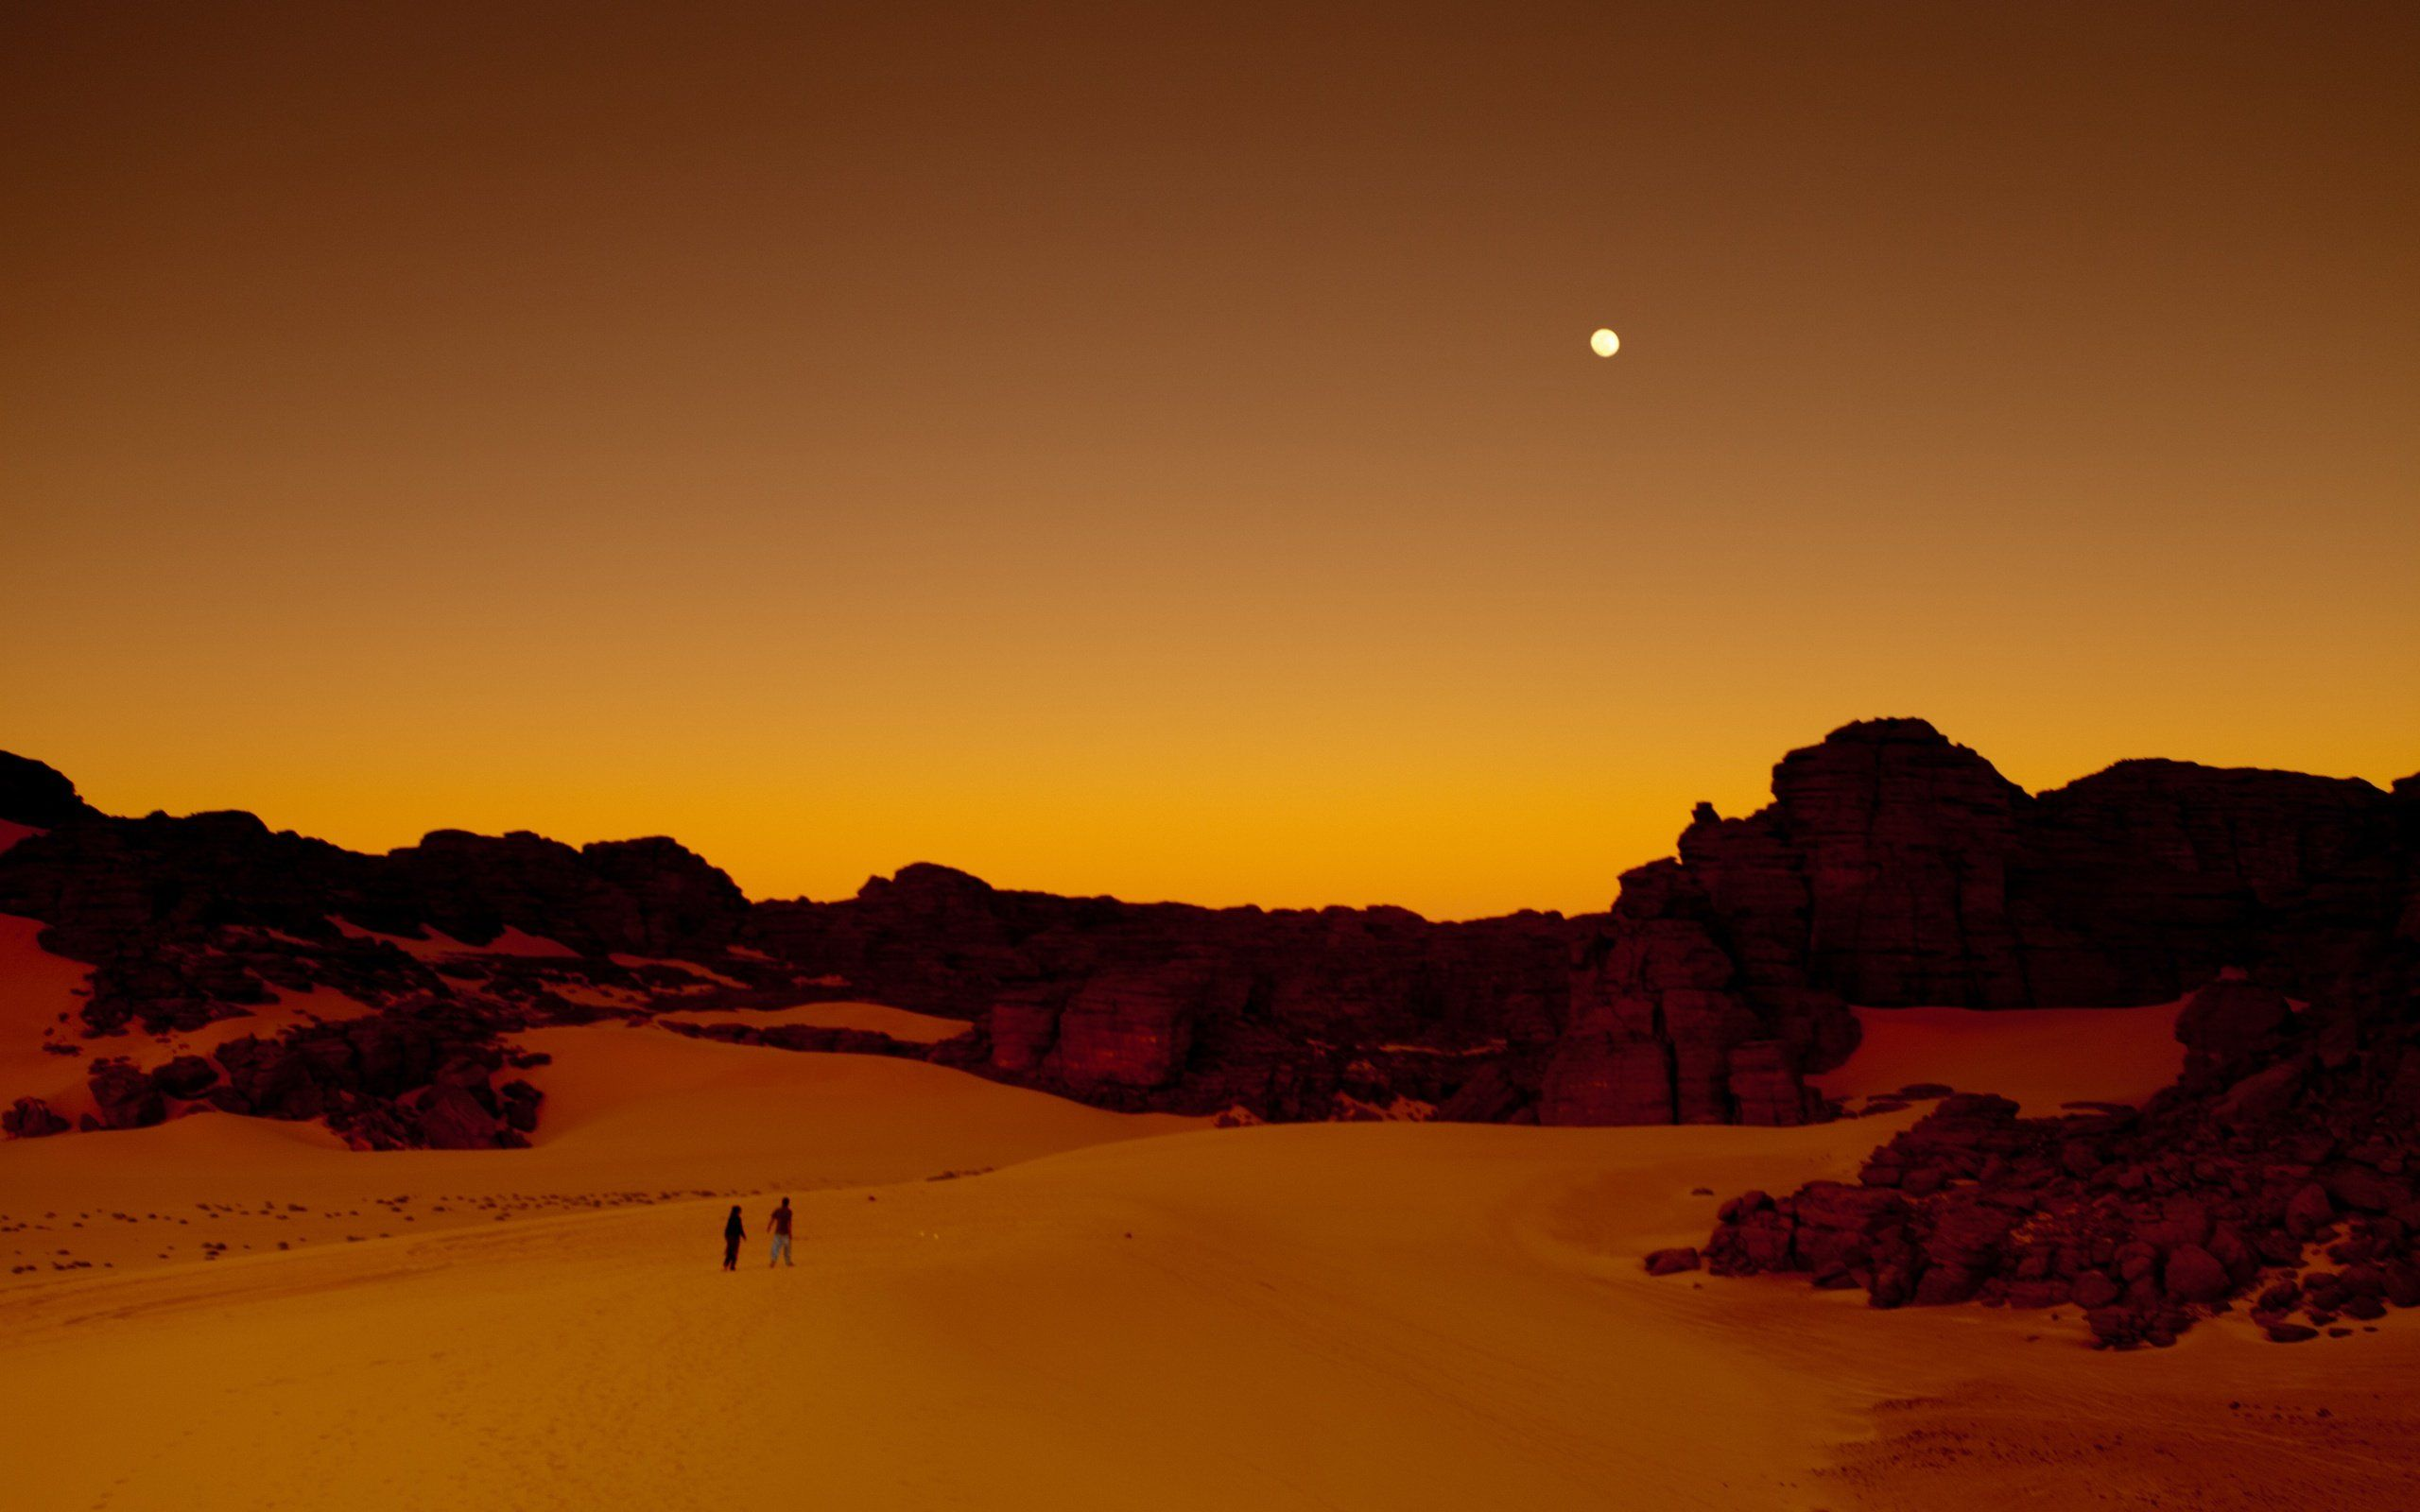 desertbackground hd